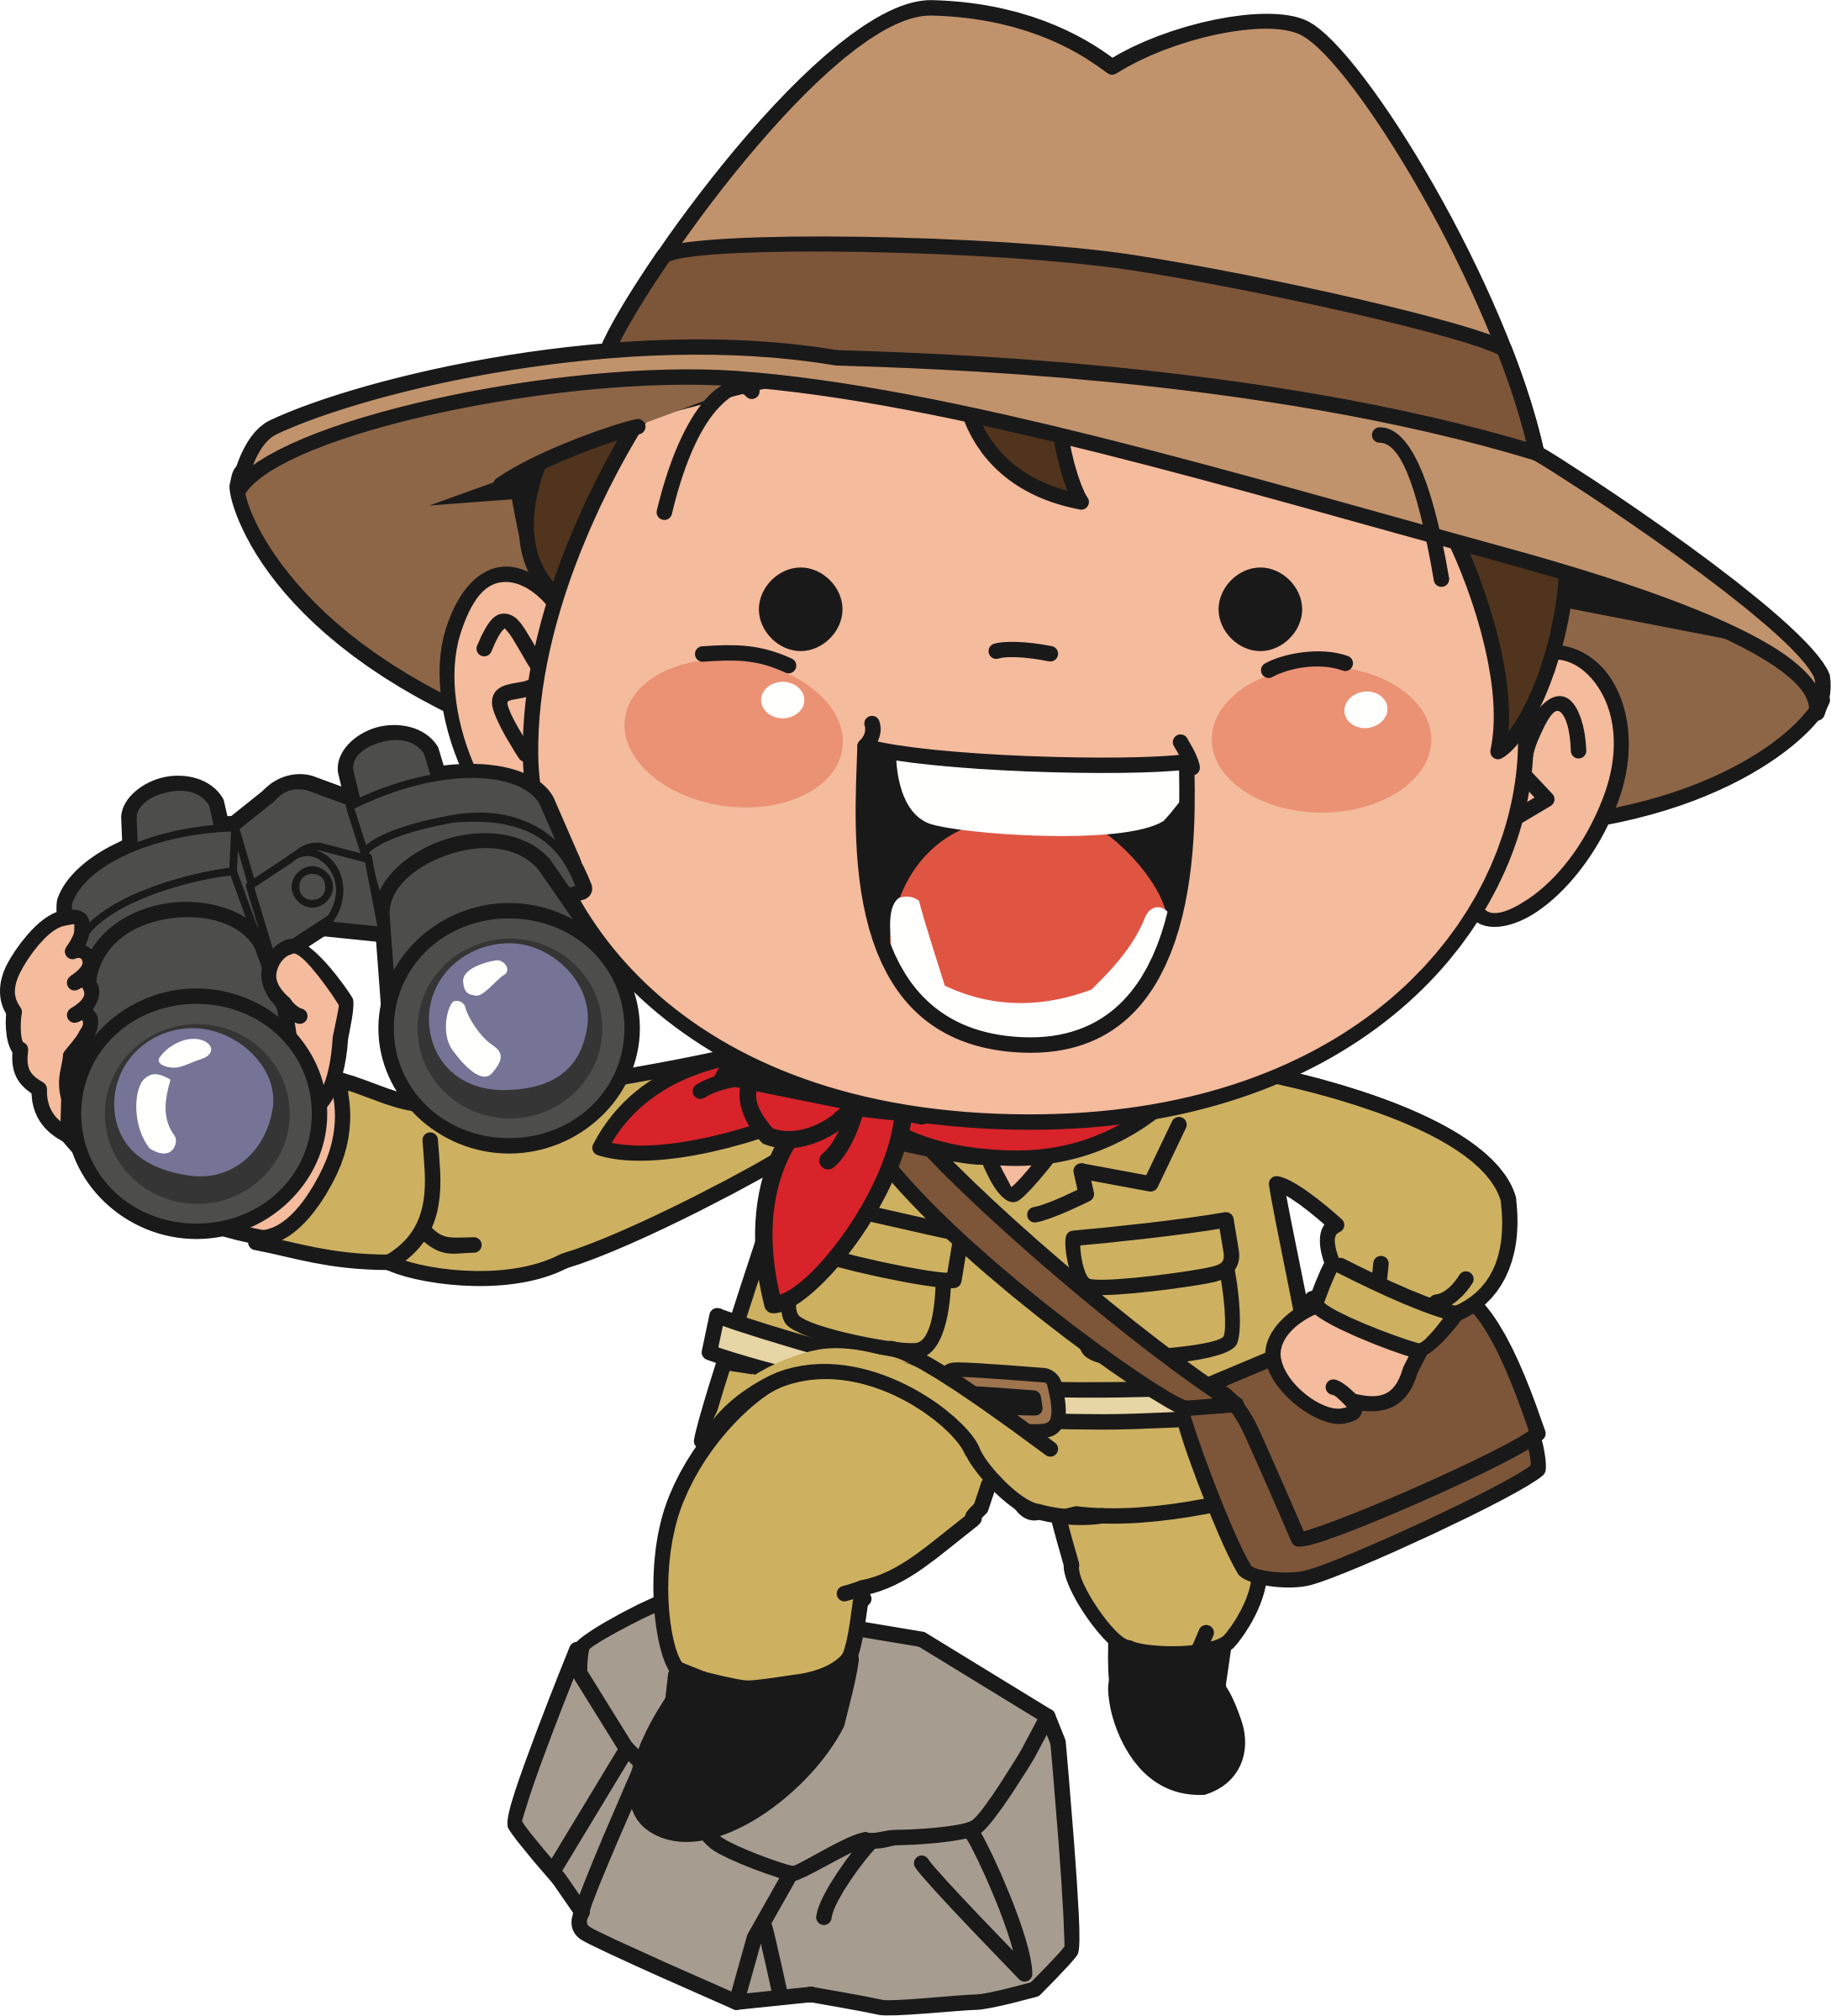 Explorer drawing clipart. Person svg free